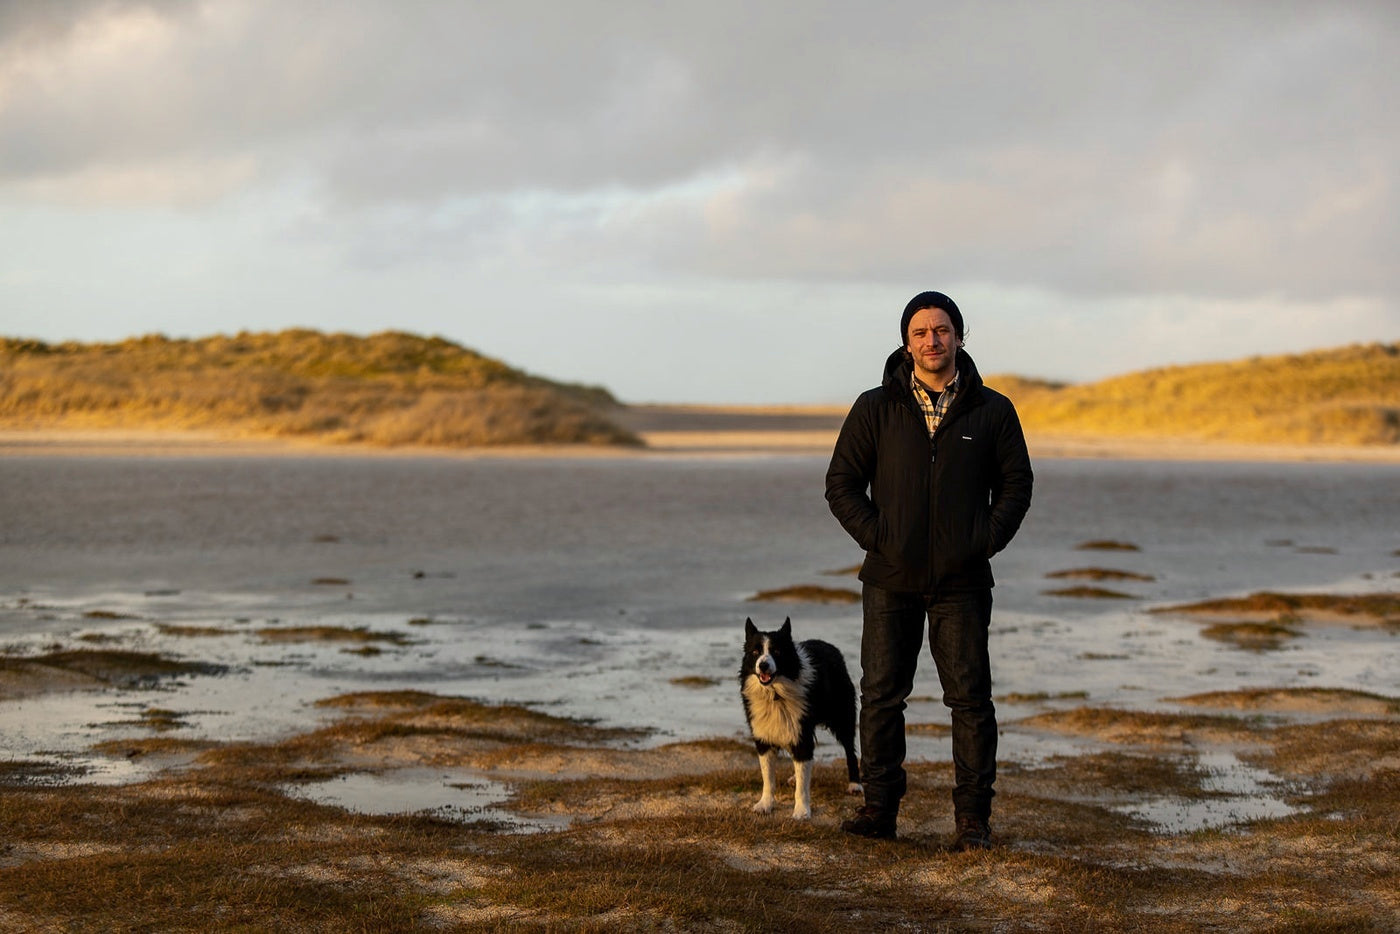 Colin Macleod with his dog on the beach in